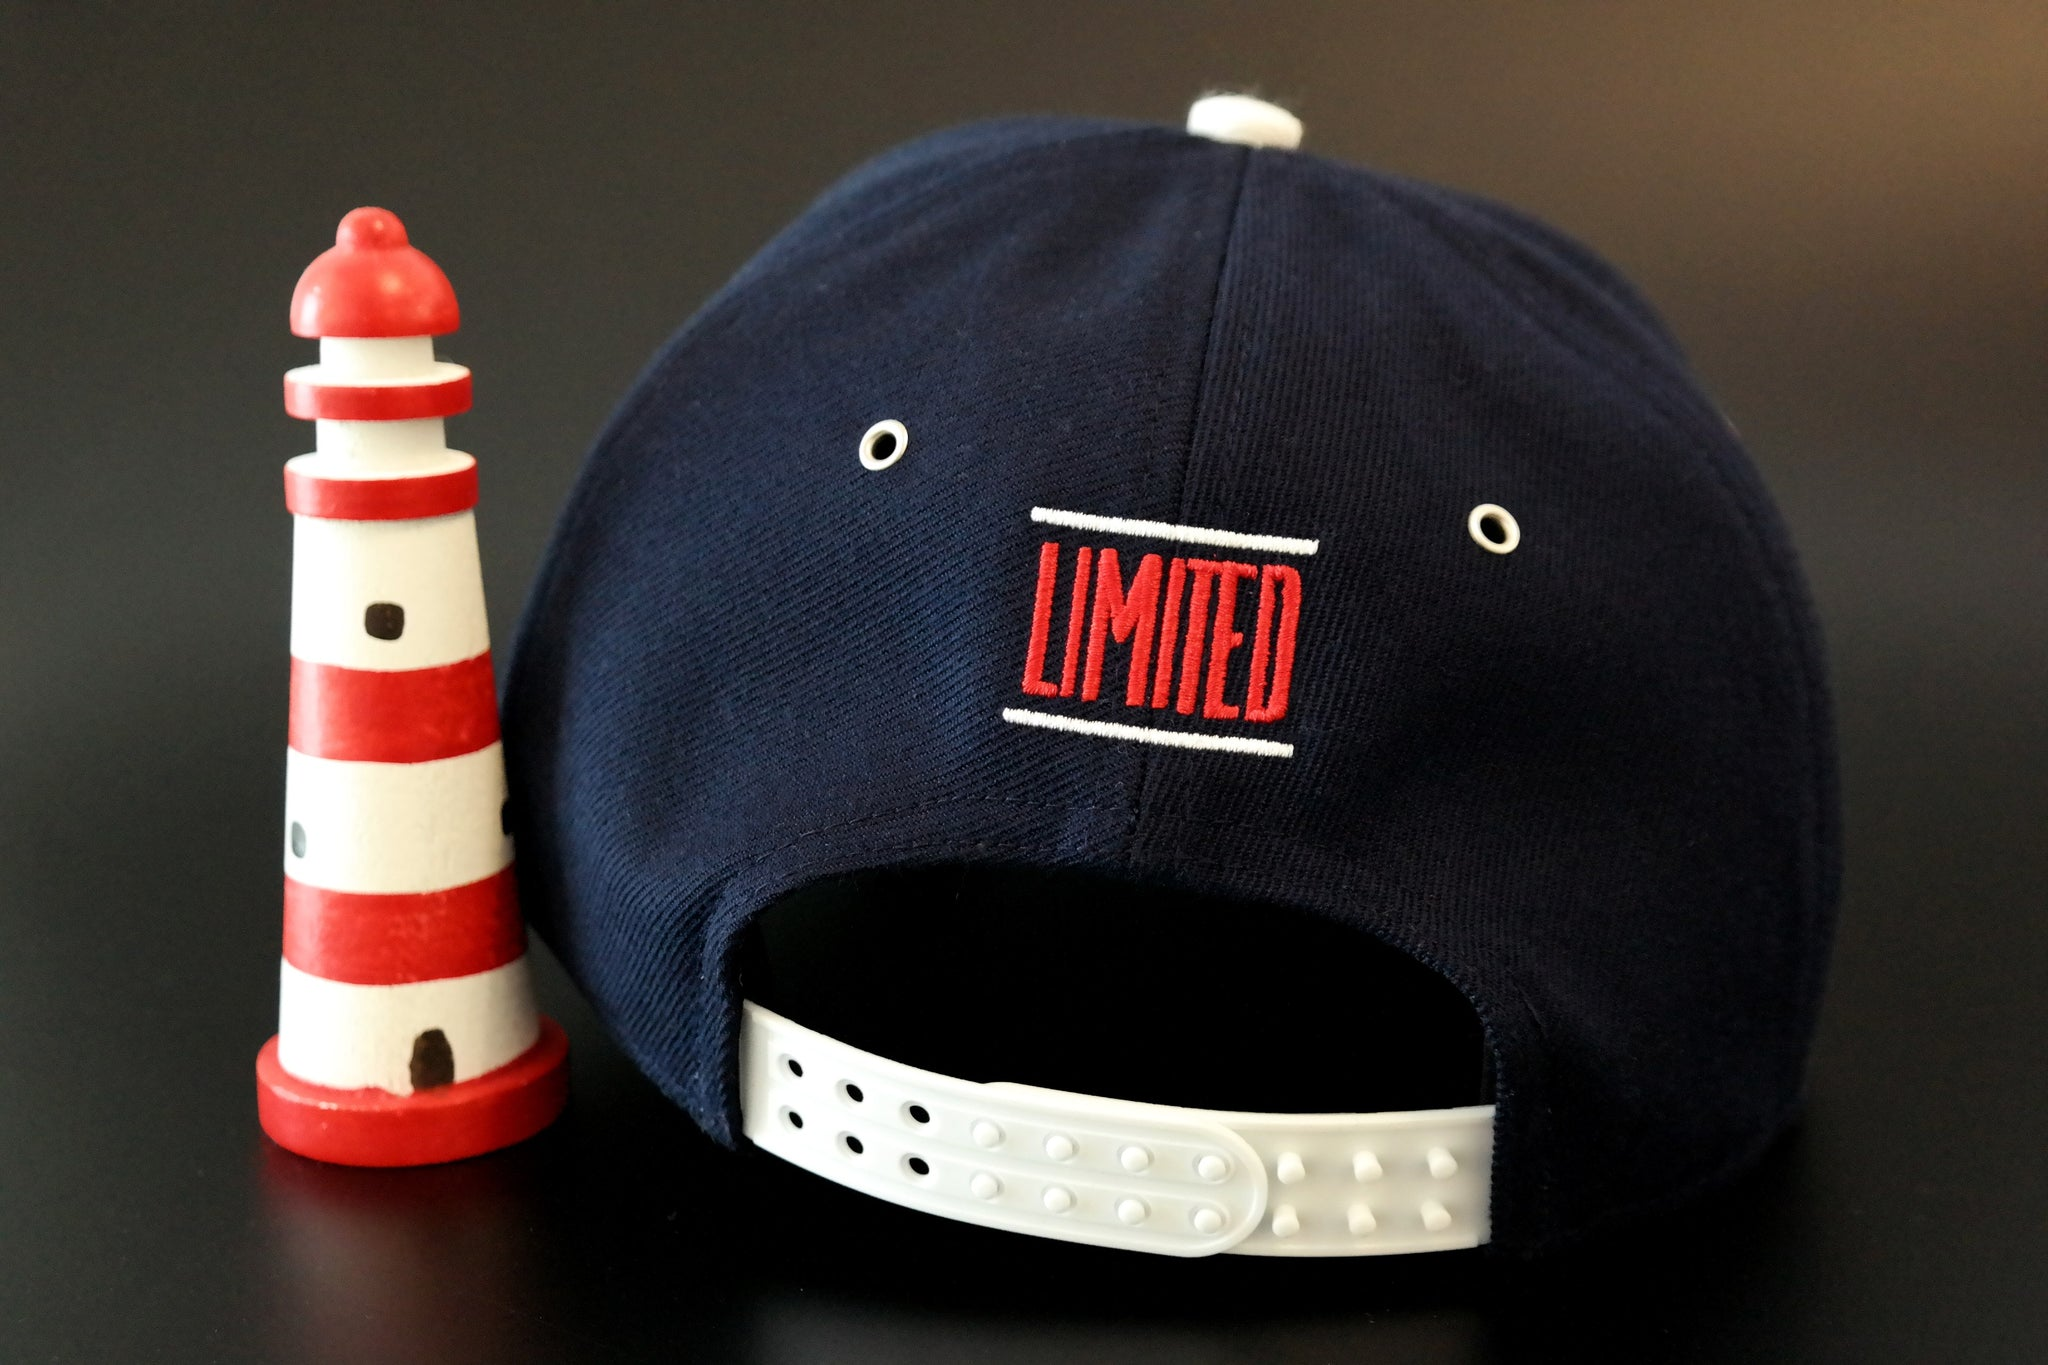 Limited_Limitierte_Snapback_Cap_Lighthouse_04